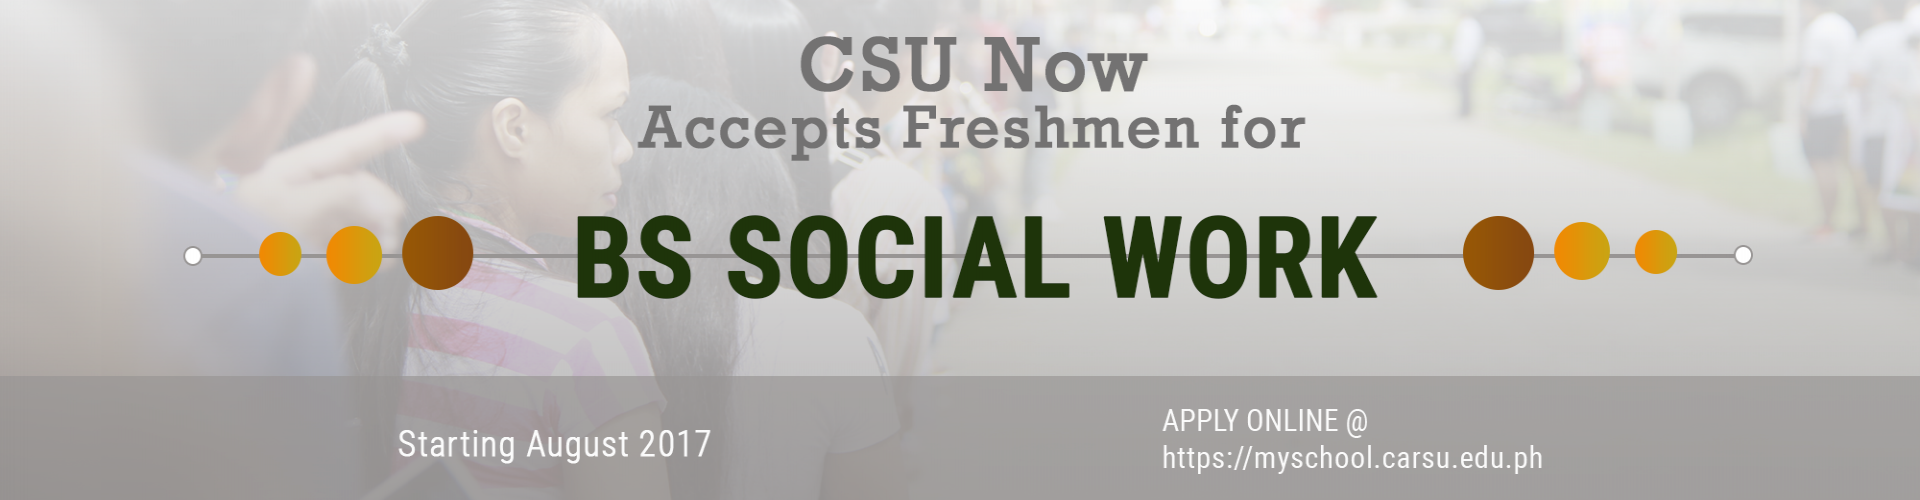 CSU BS Social Work